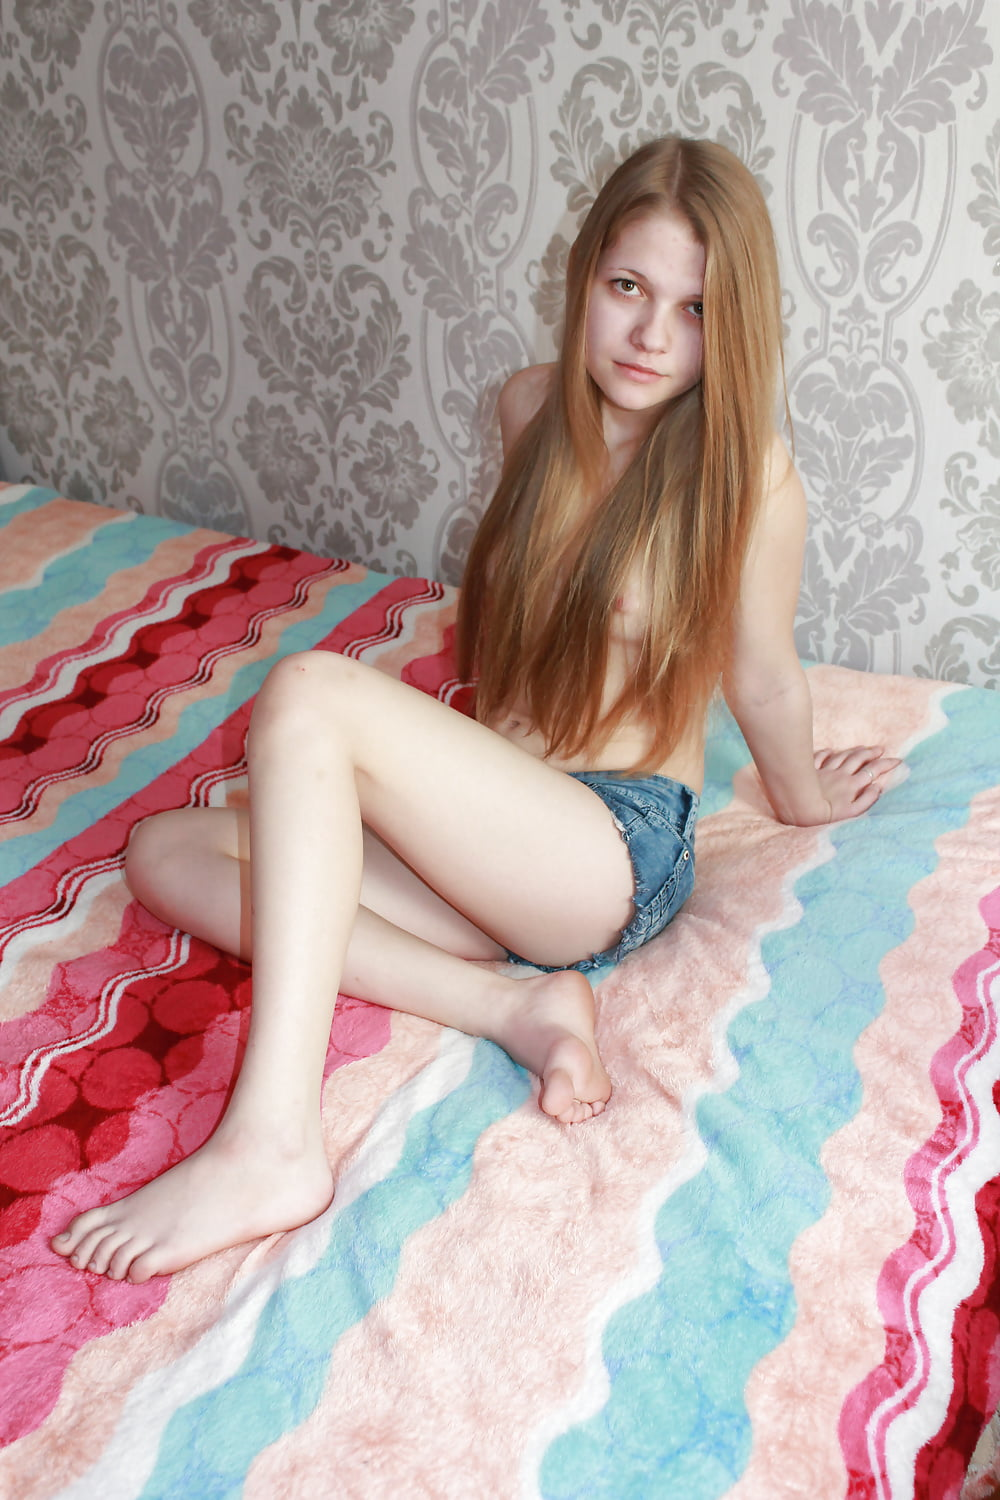 Anistone sexy gallery russian teen young